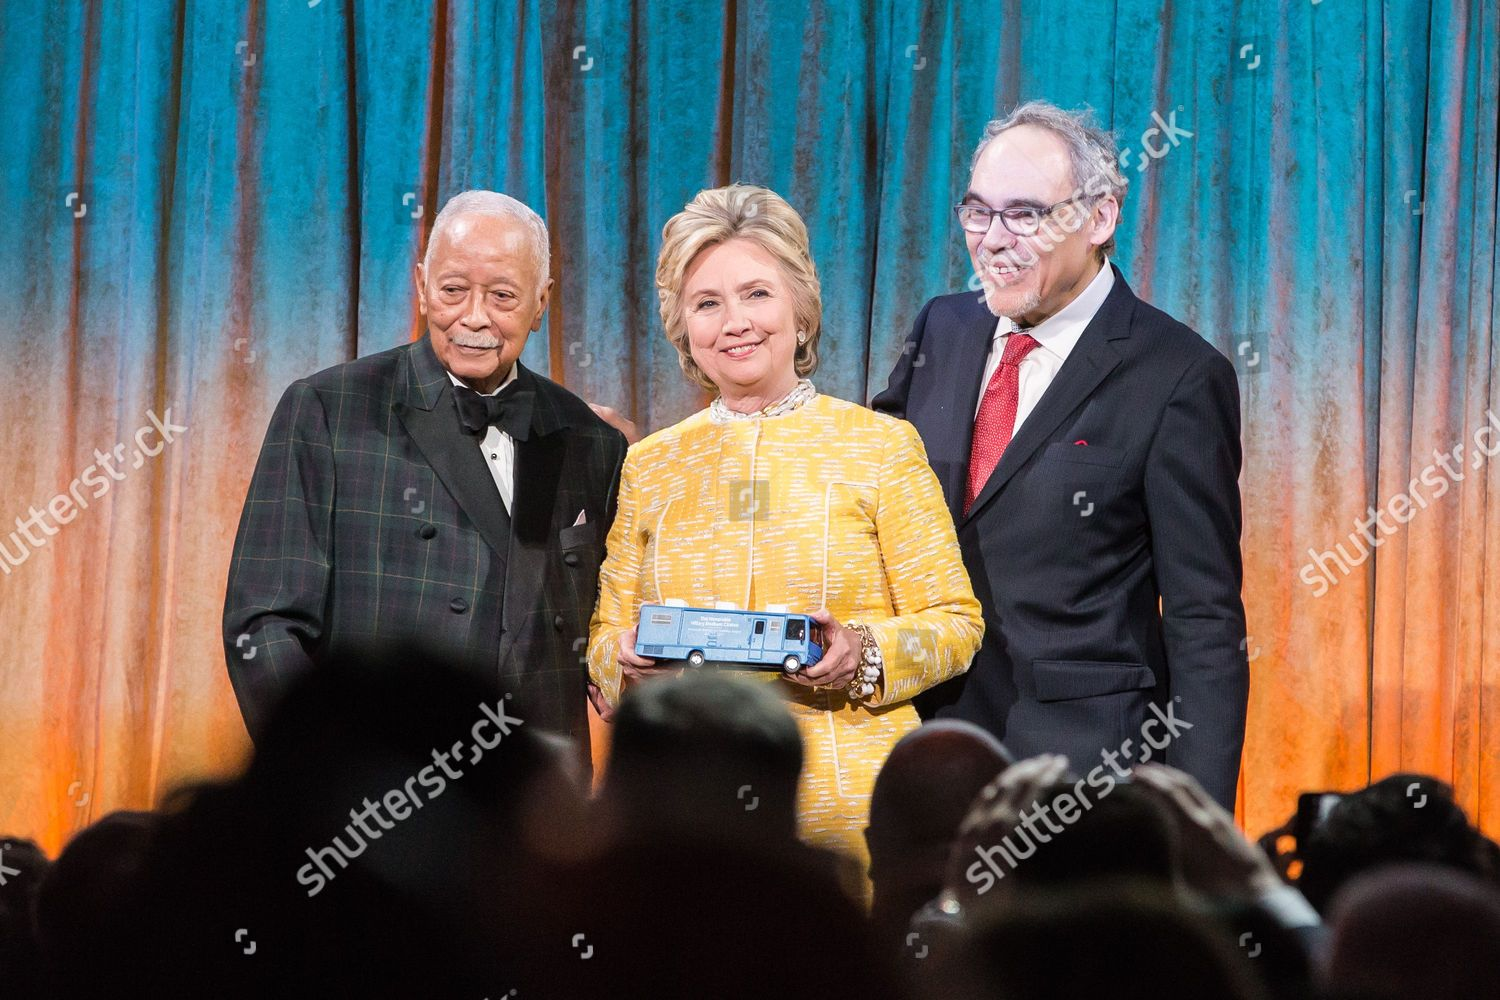 david dinkins hillary clinton dr irwin redlener editorial stock photo stock image shutterstock https www shutterstock com editorial image editorial childrens health fund annual benefit new york usa 23 may 2017 8835925a